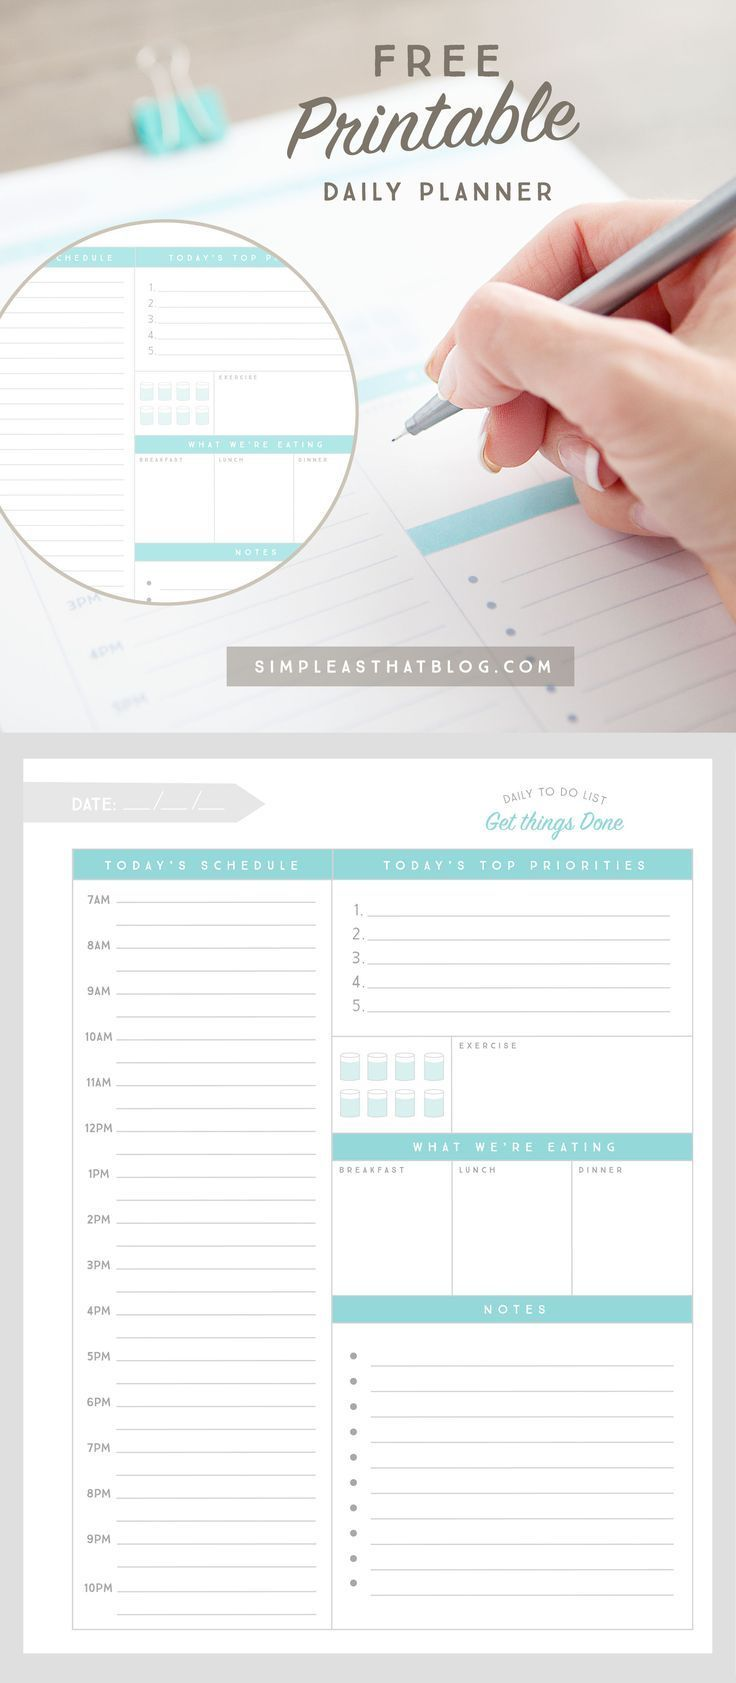 Ba ba back to school coloring sheets printable - Free Organizational Printables To Streamline Your To Do Lists Your Schedule Your Meal Plans Your Life